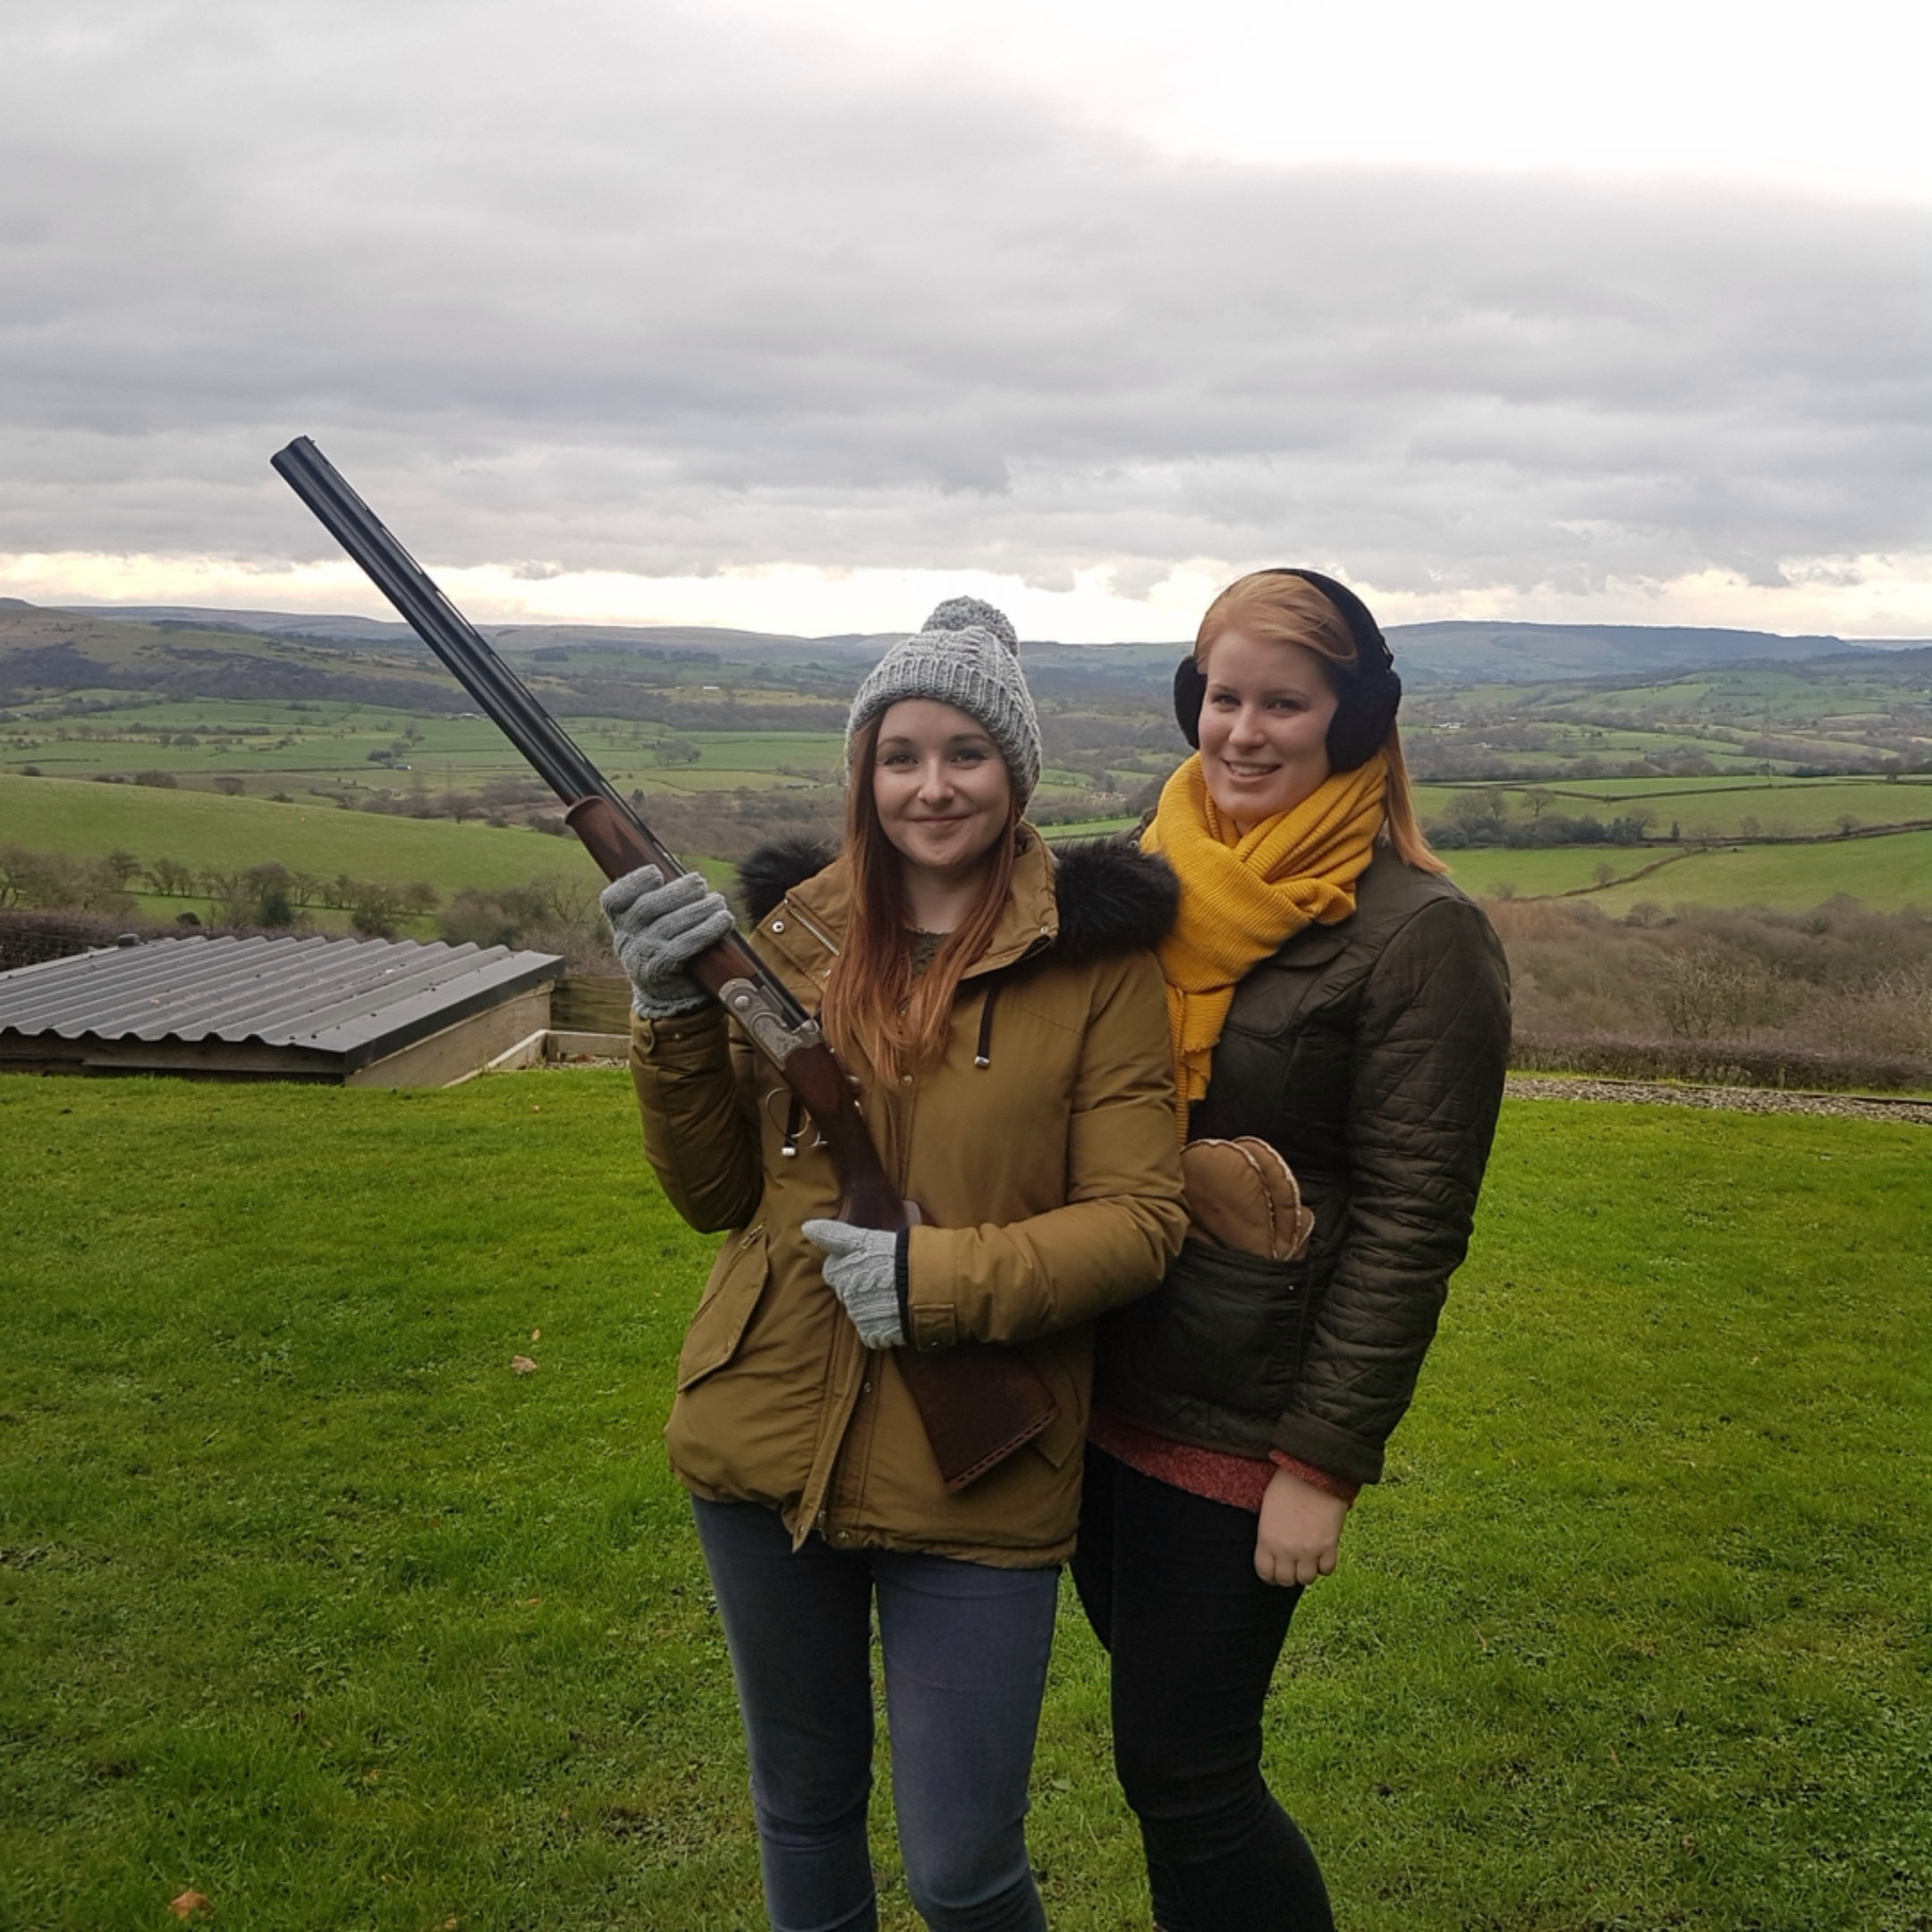 Jen & Ellen visit Cheshire's Finest Shooting Ground